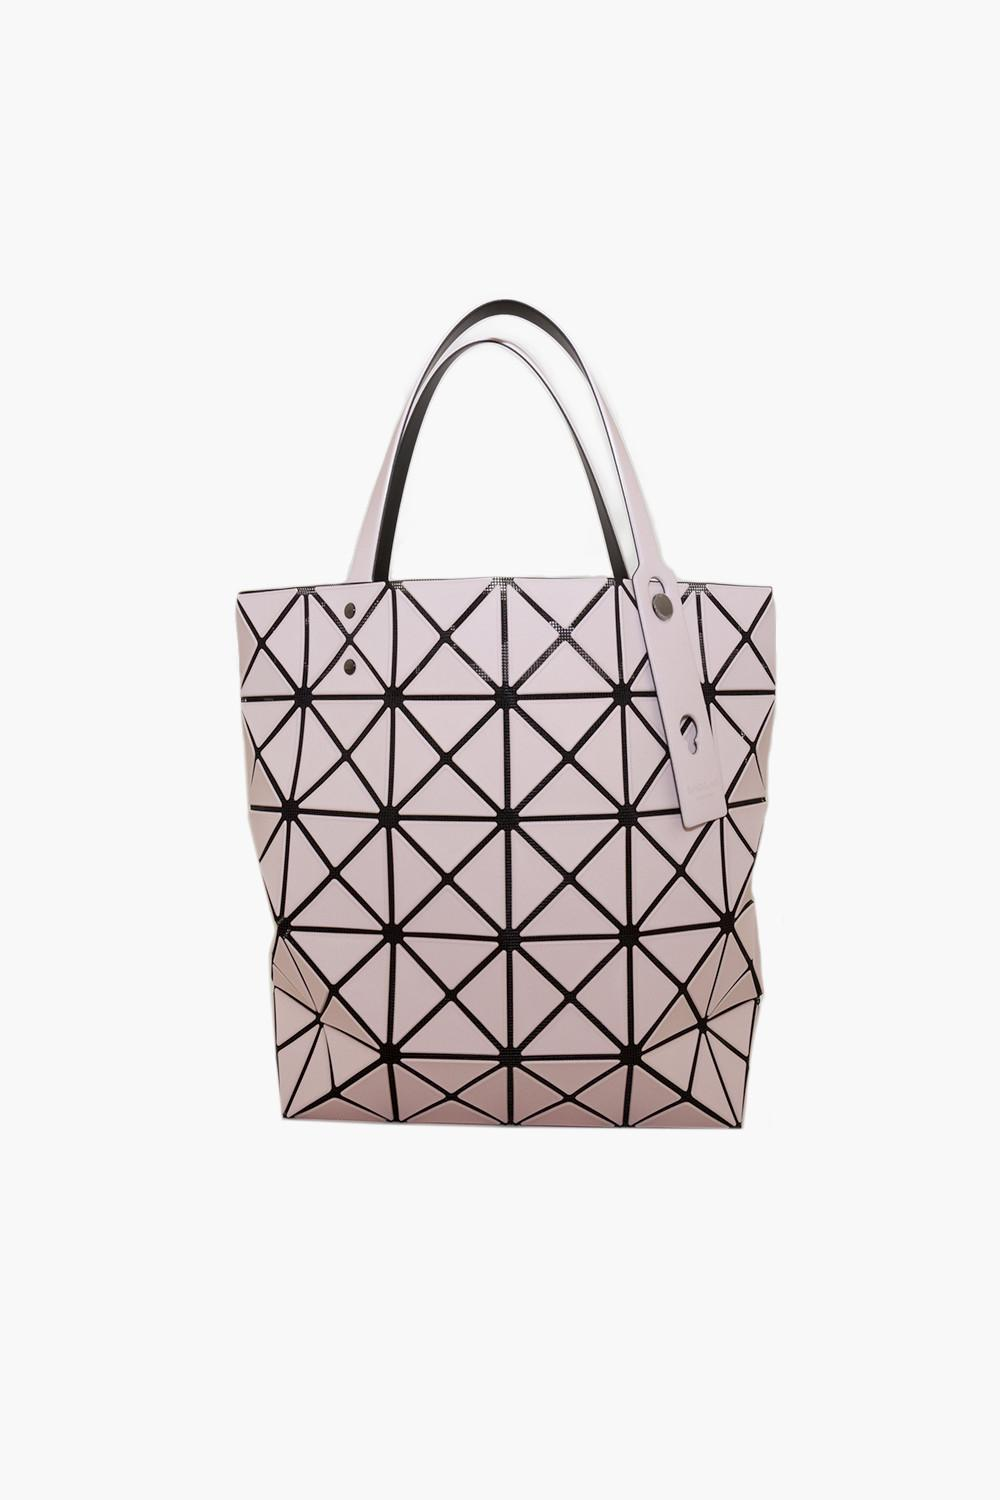 dad32a6d73 Lyst - Bao Bao Issey Miyake Lucent Frost Tote in Black